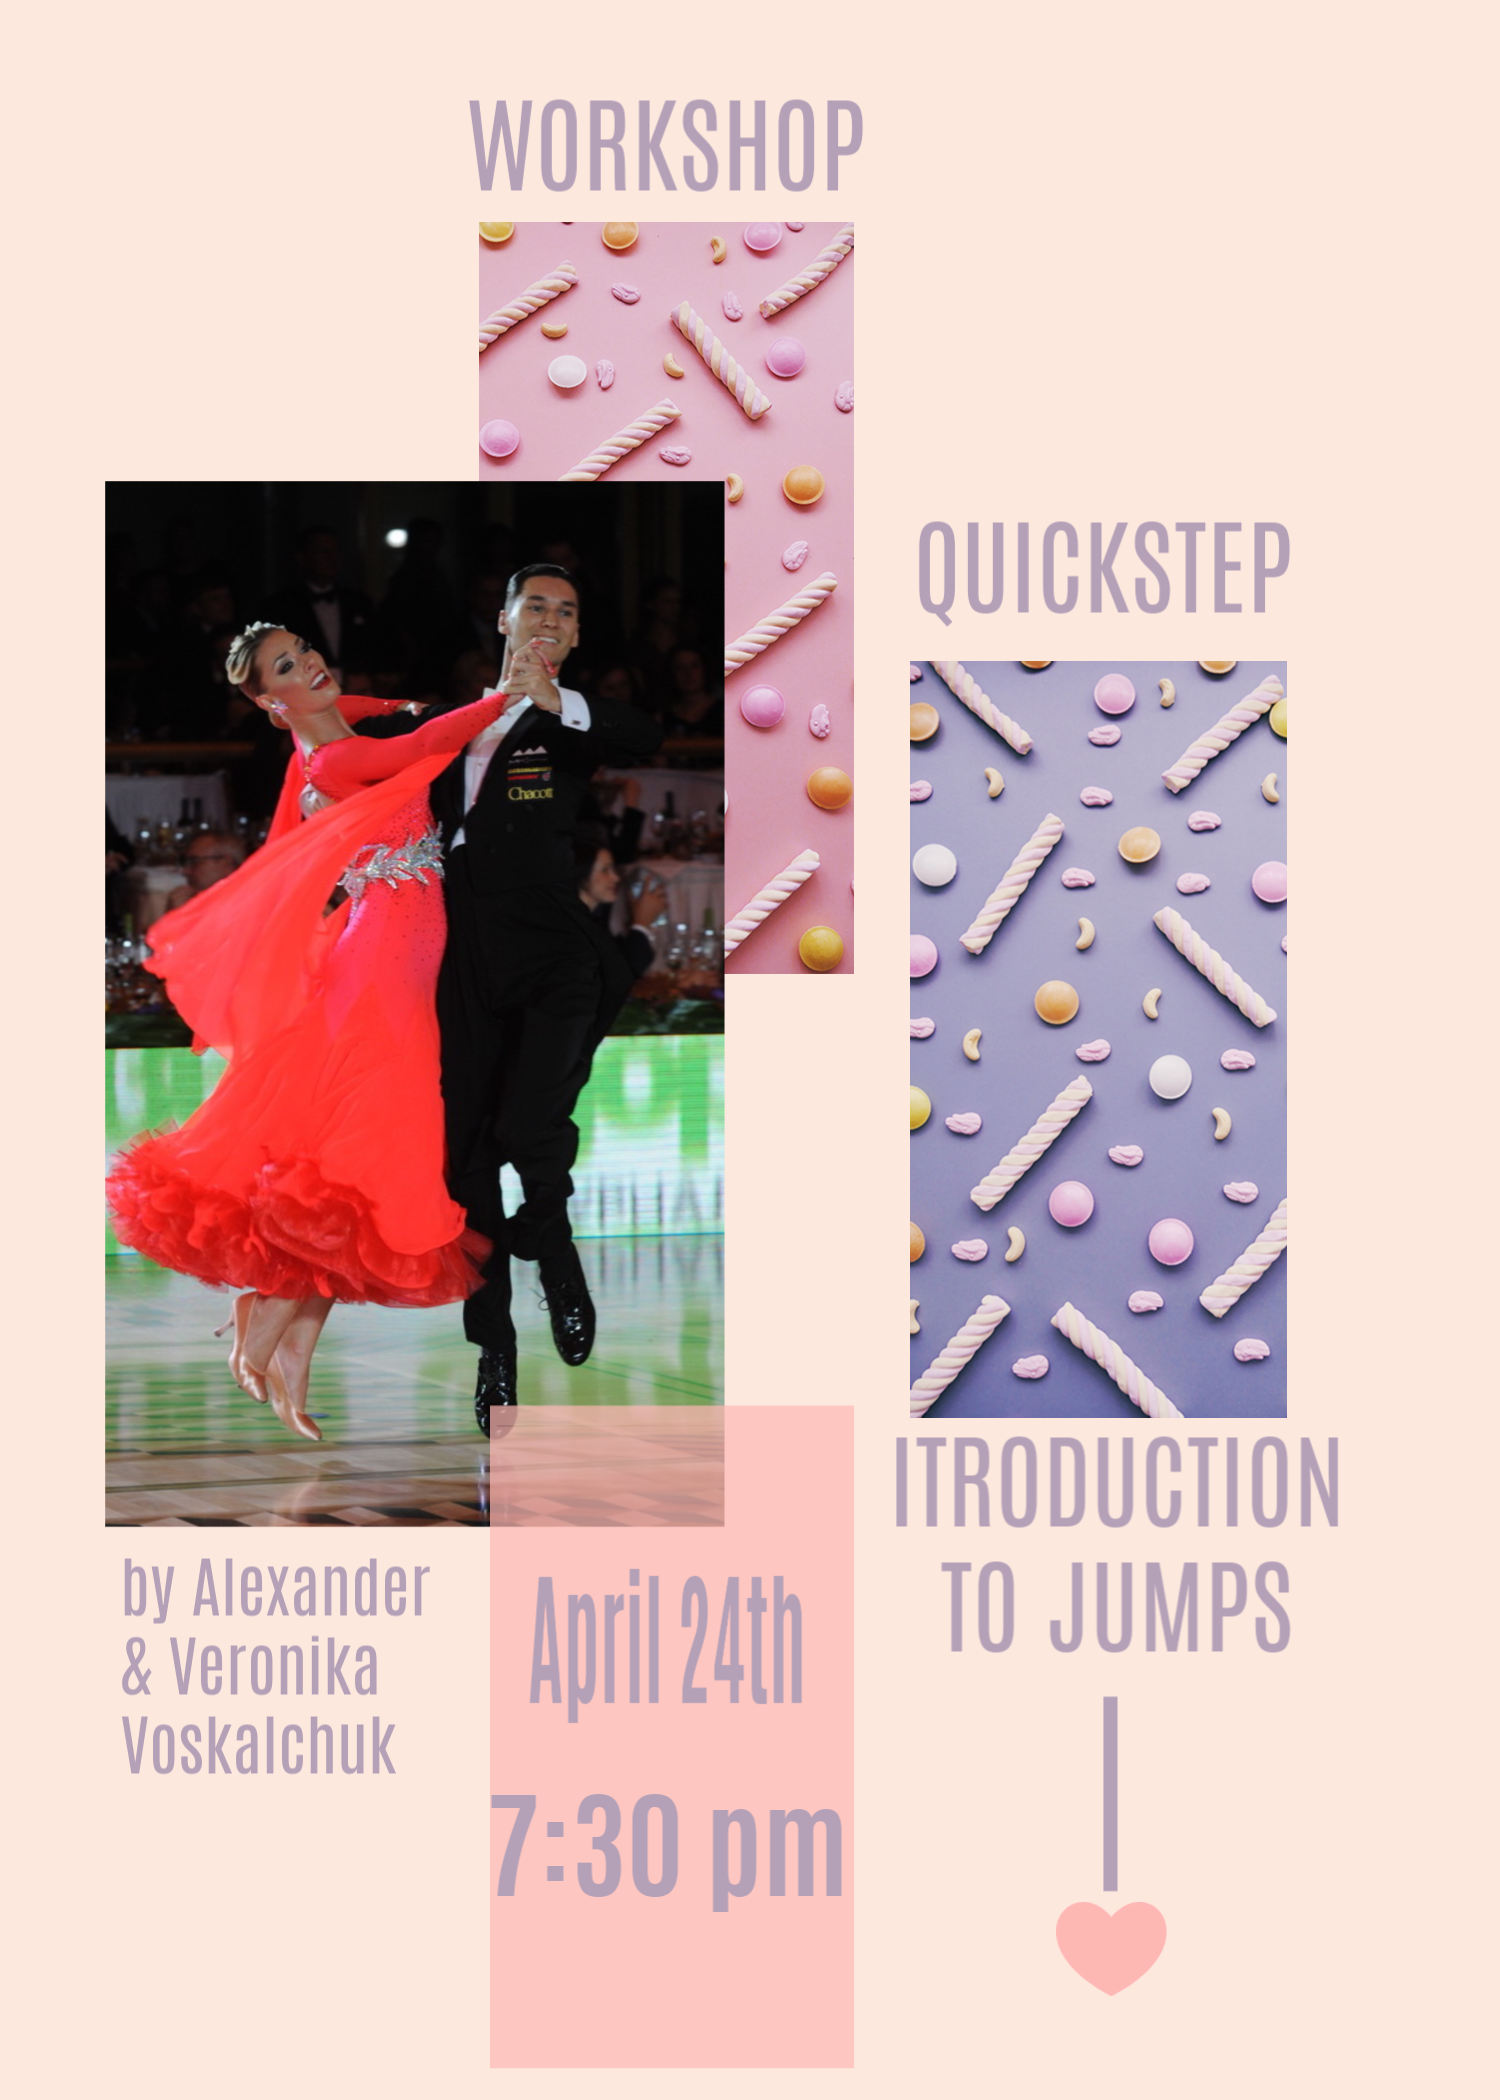 Alexander & Veronika Voskalchuk - Quickstep Workshop - Wednesday, April 24, 2019 - 7.30 PM